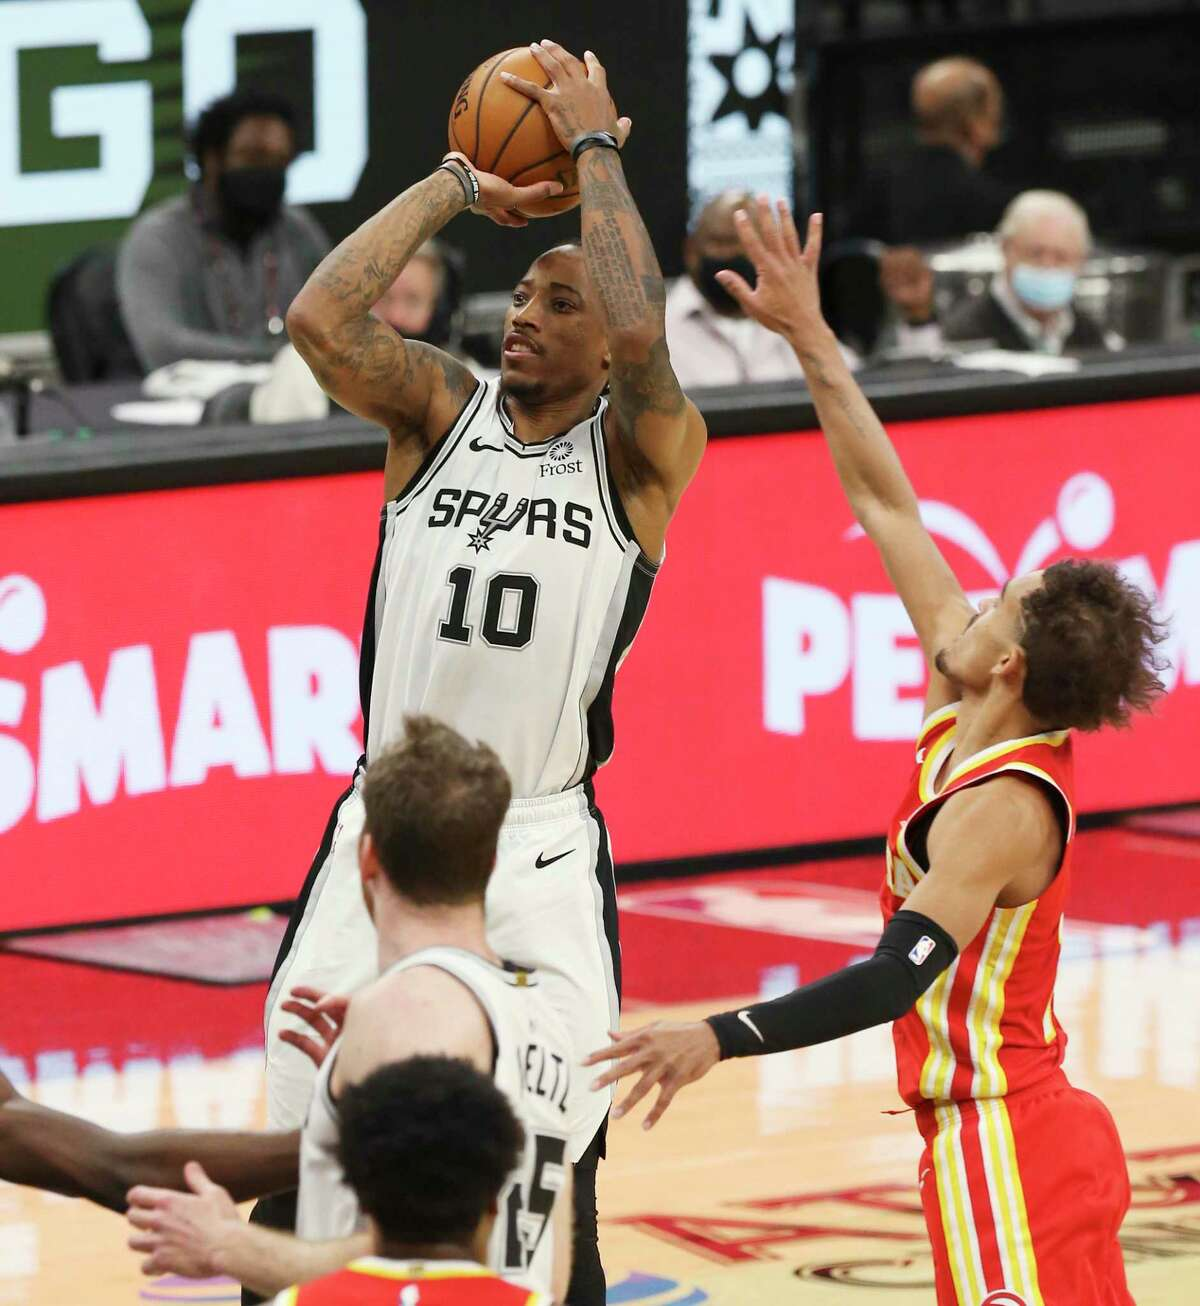 Spurs' DeMar DeRozan (10) shoots against Atlanta Hawks' Trae Young (11) during their game at the AT&T Center on Thursday, Apr. 1, 2021.